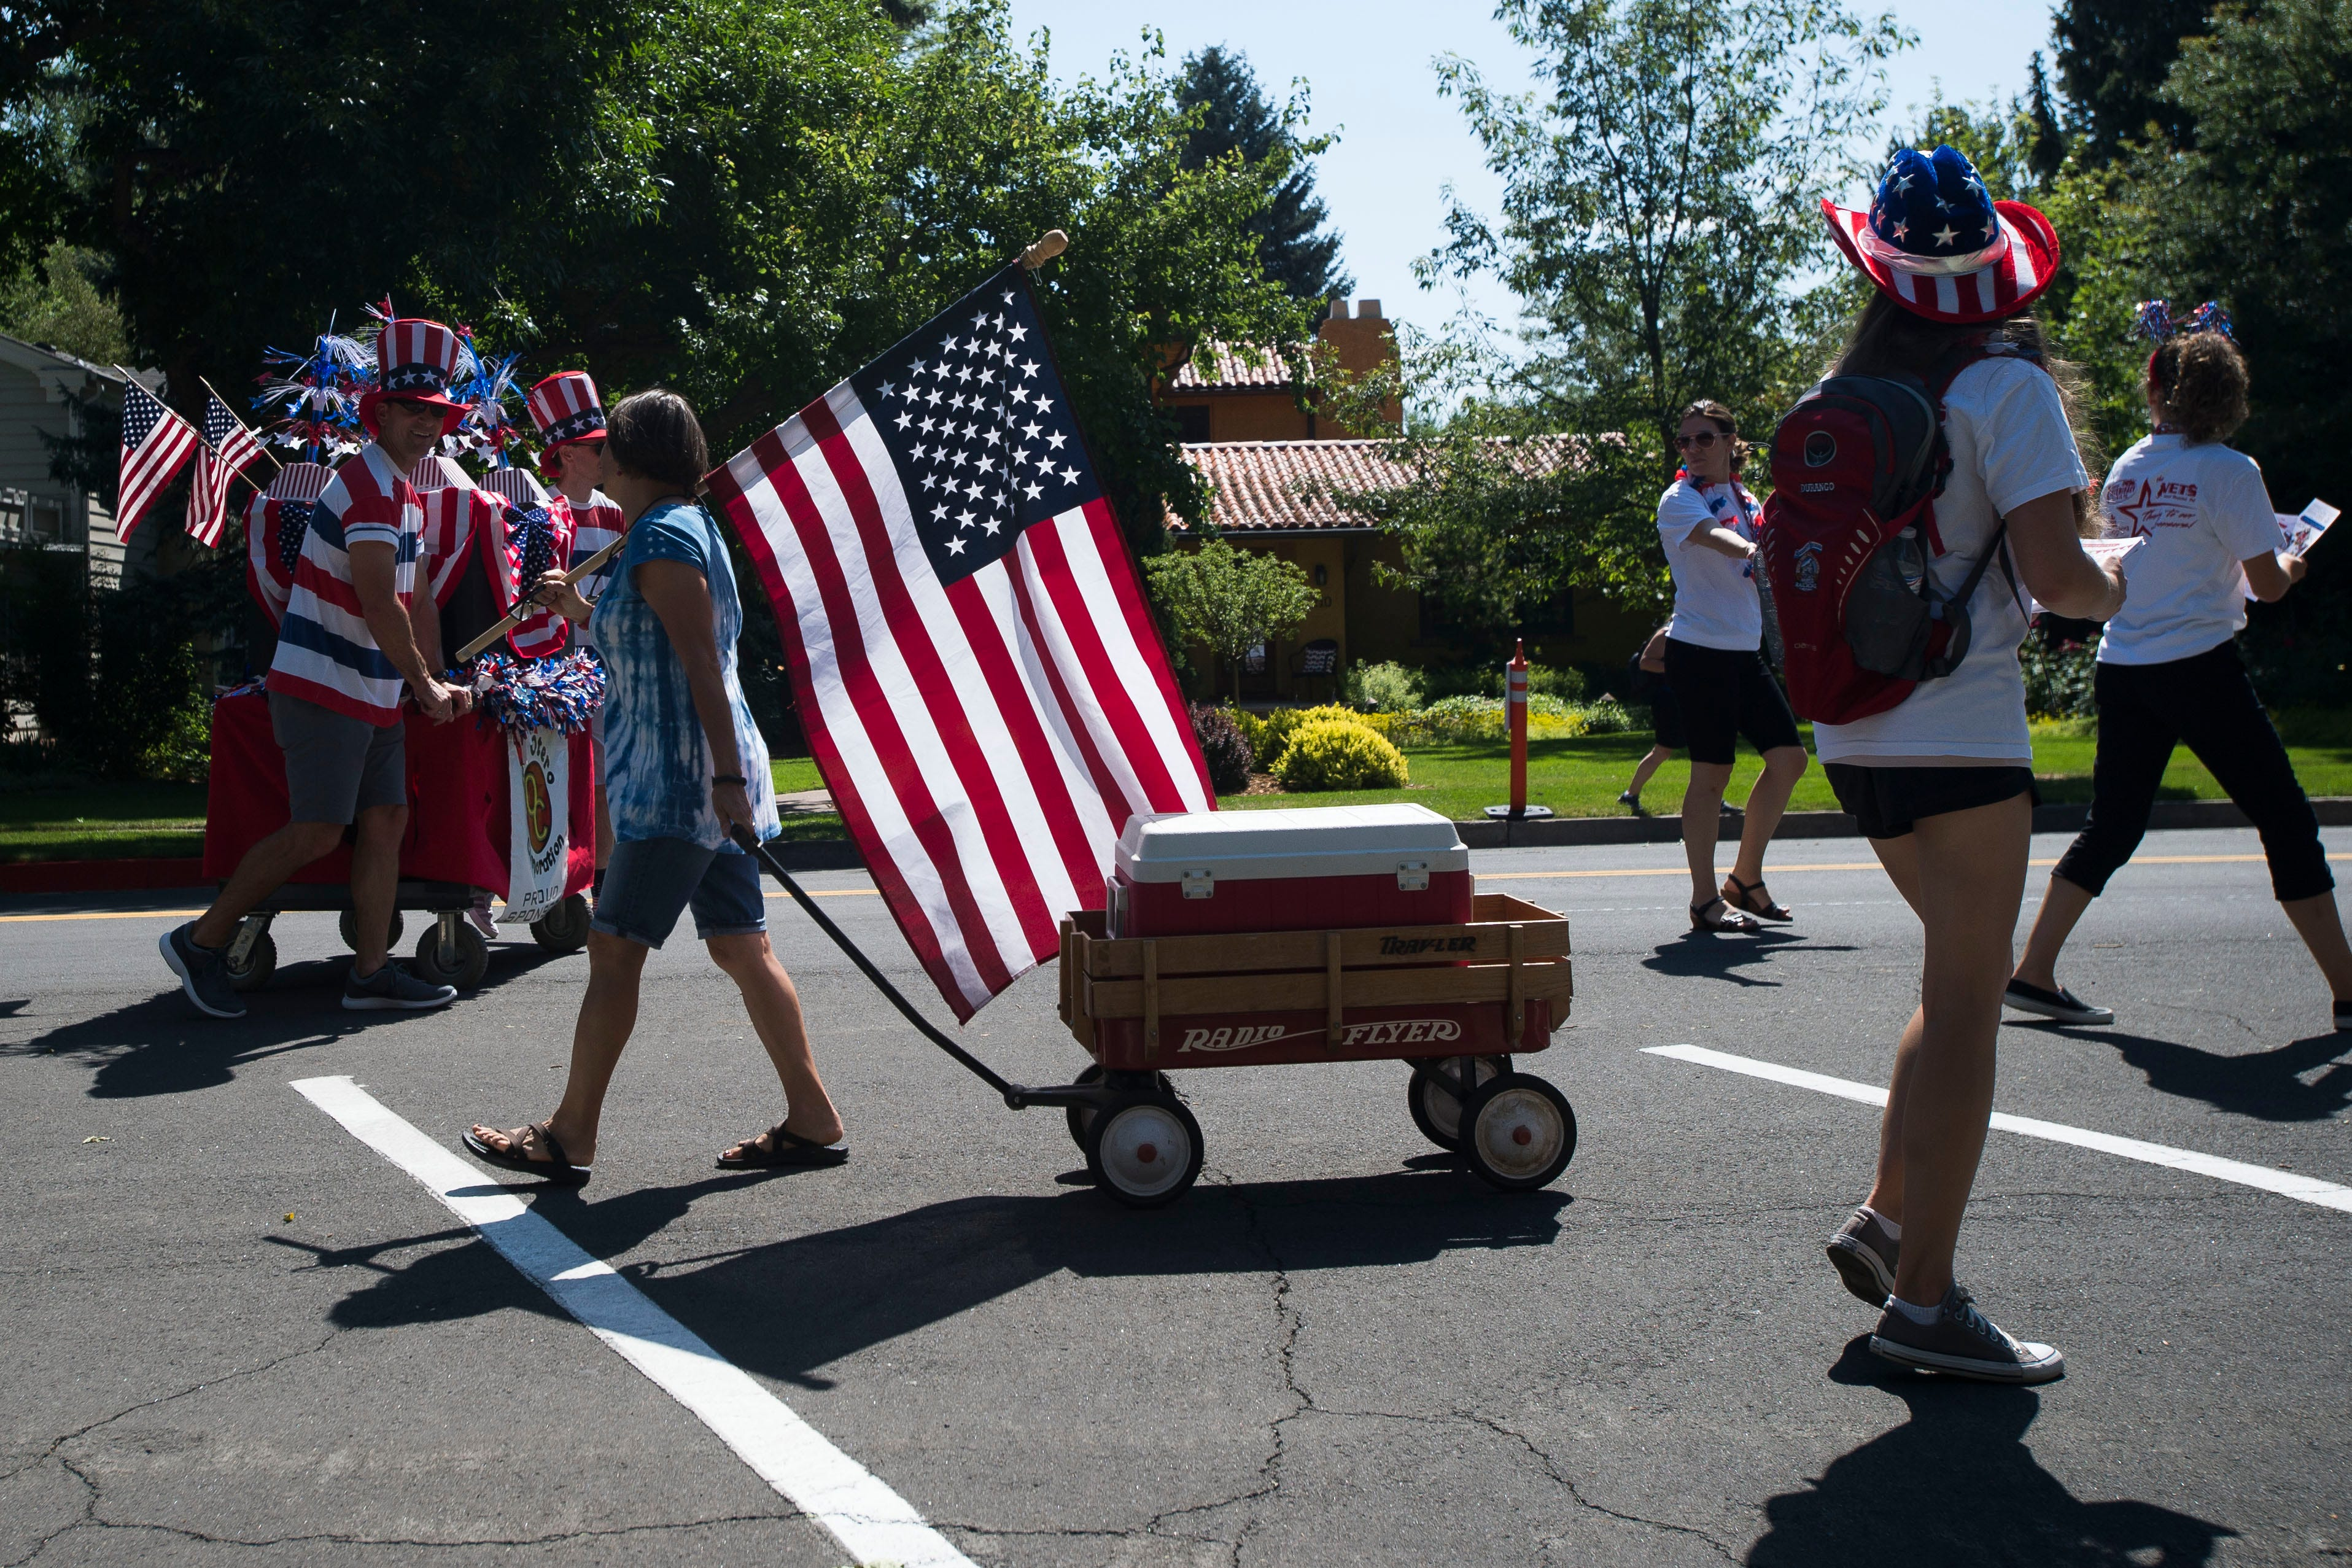 Http Picture Gallery News Local 2018 07 16 Gas Designed By John Broskie Made In Usa 636663217971223526 Ftc0704 July4th009